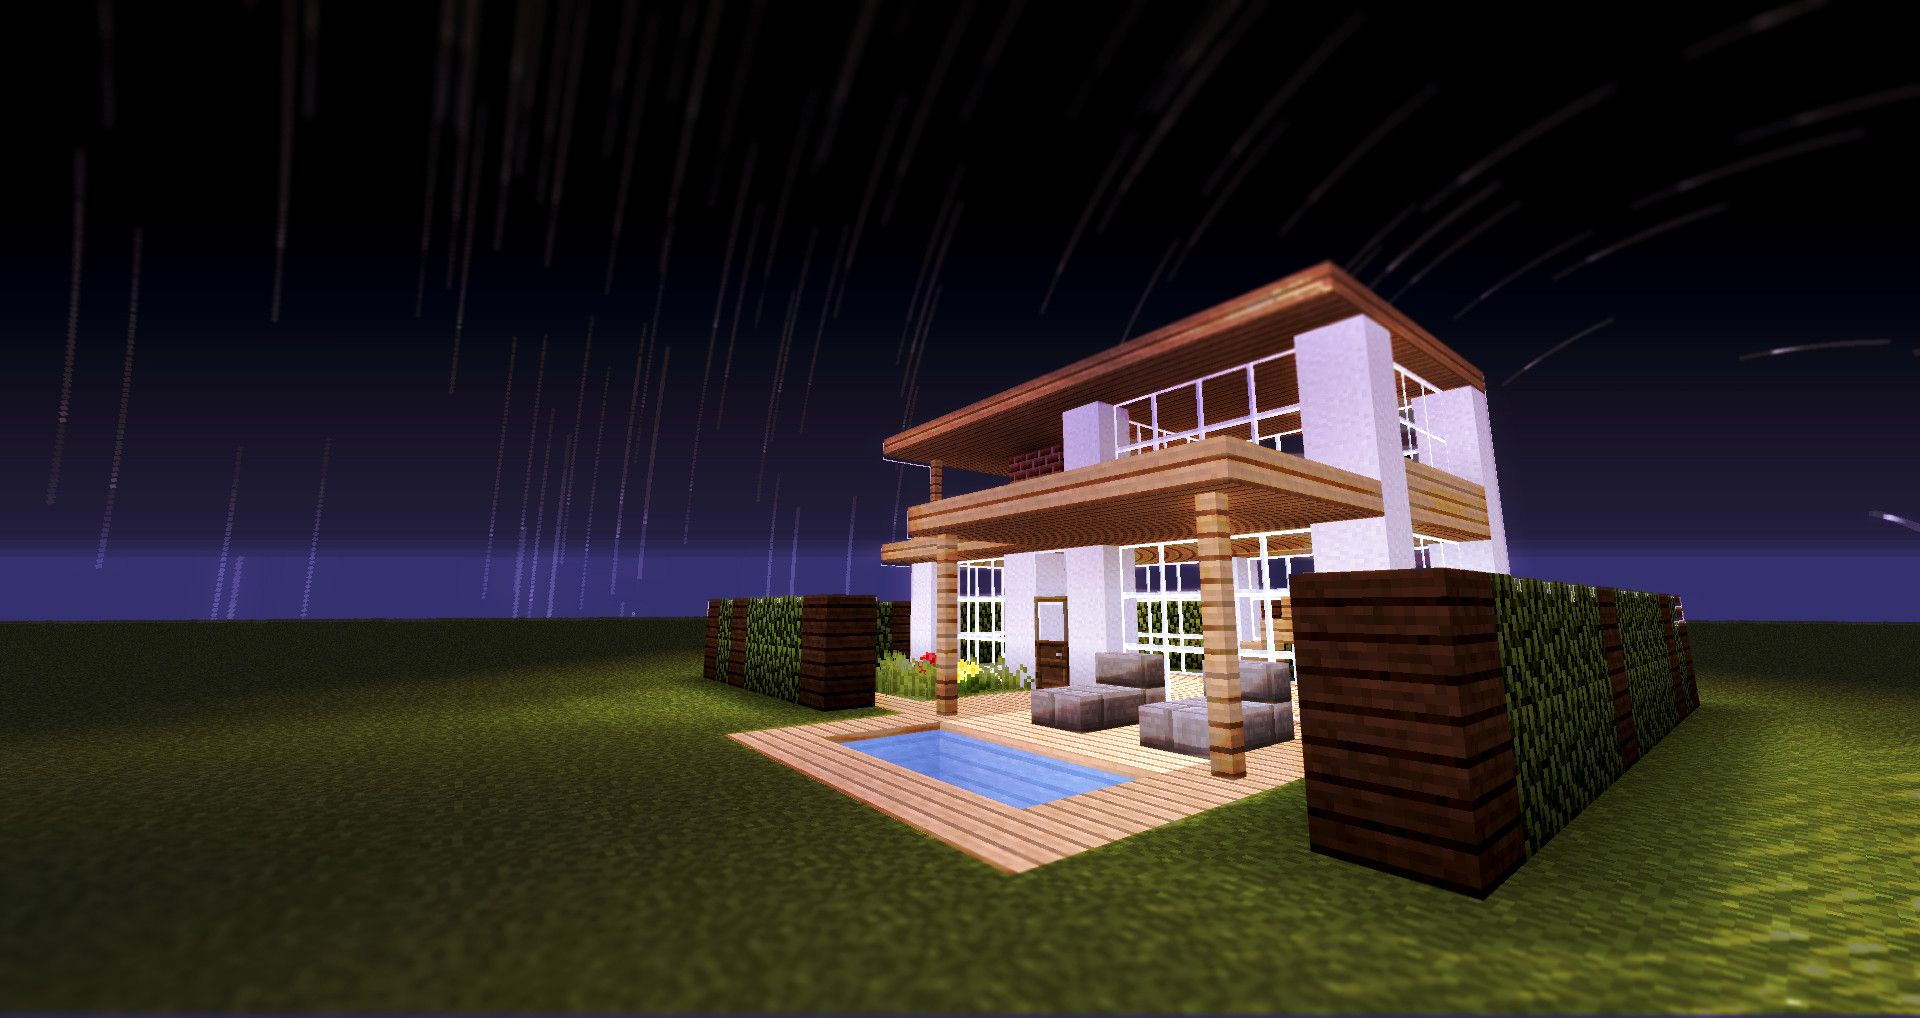 Minecraft House Time-lapse Star Trail | Minecraft houses ...